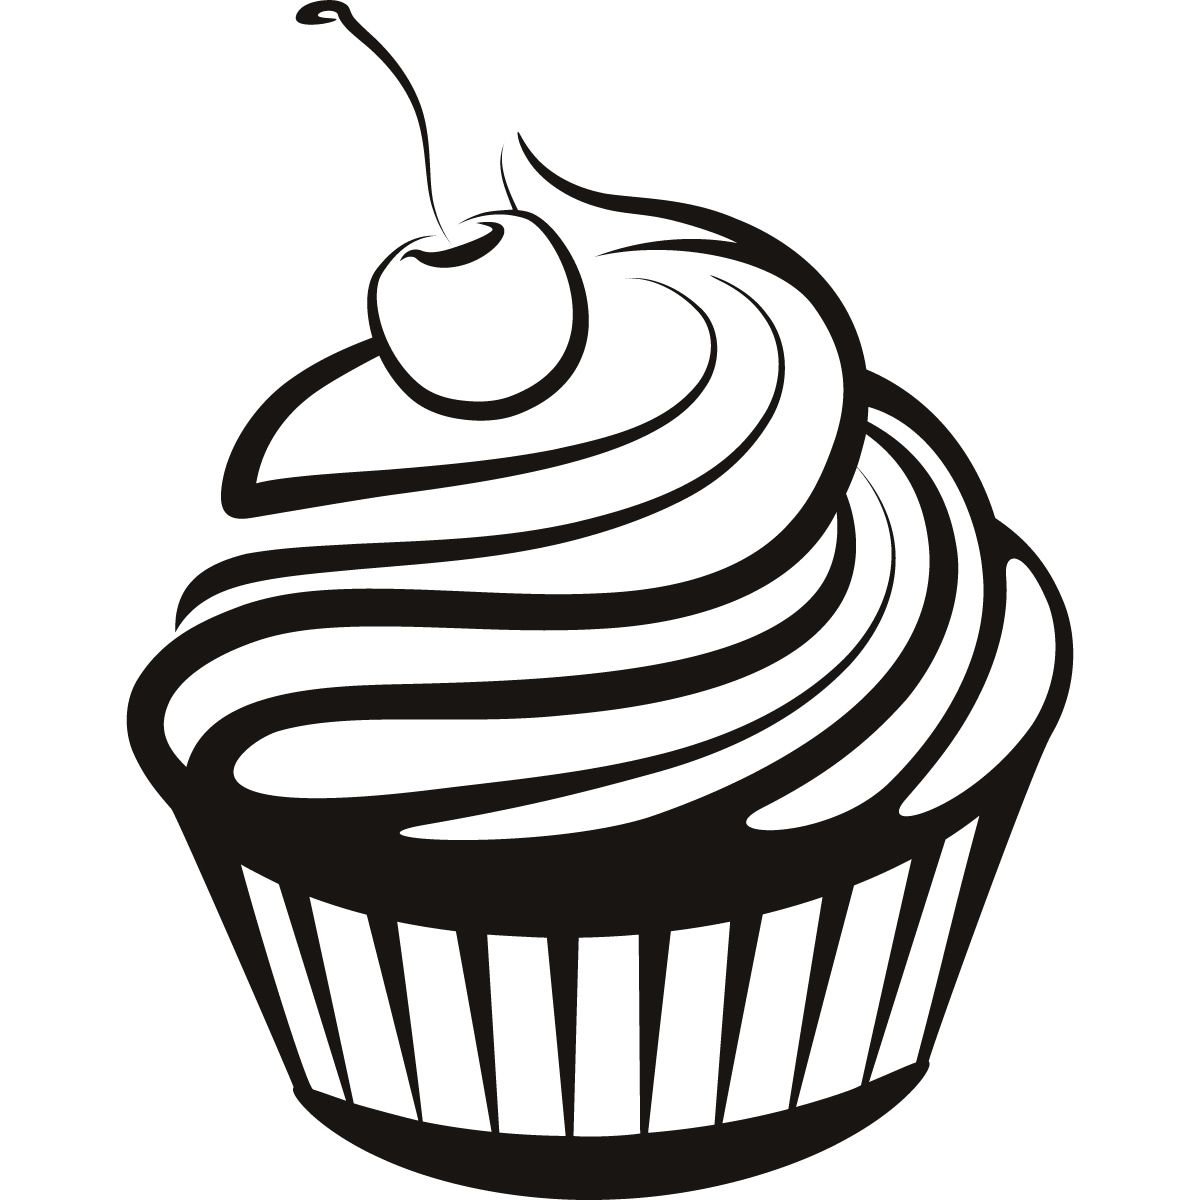 Clipart cupcake logo. Black and white drawings